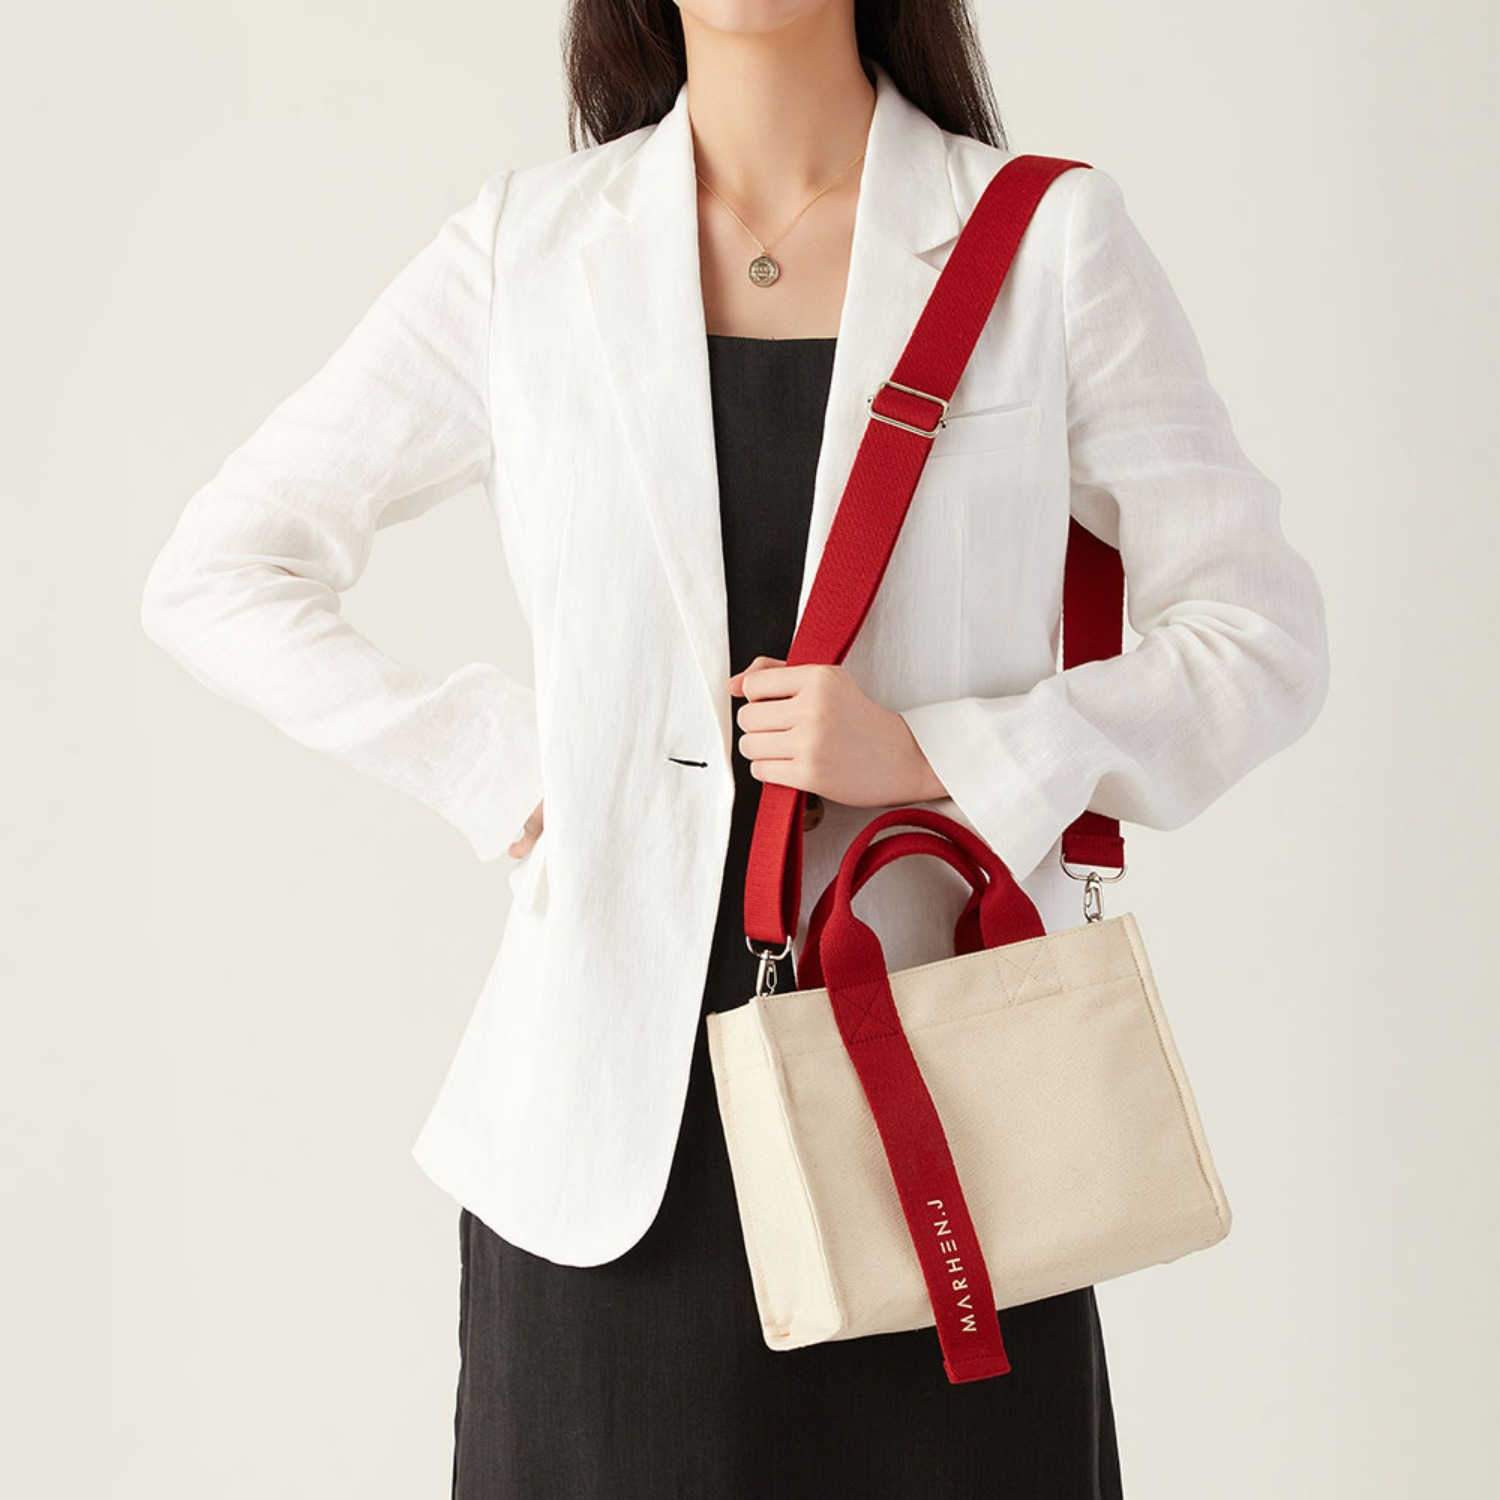 RICO MINI iRED (Length adjustable strap is included)